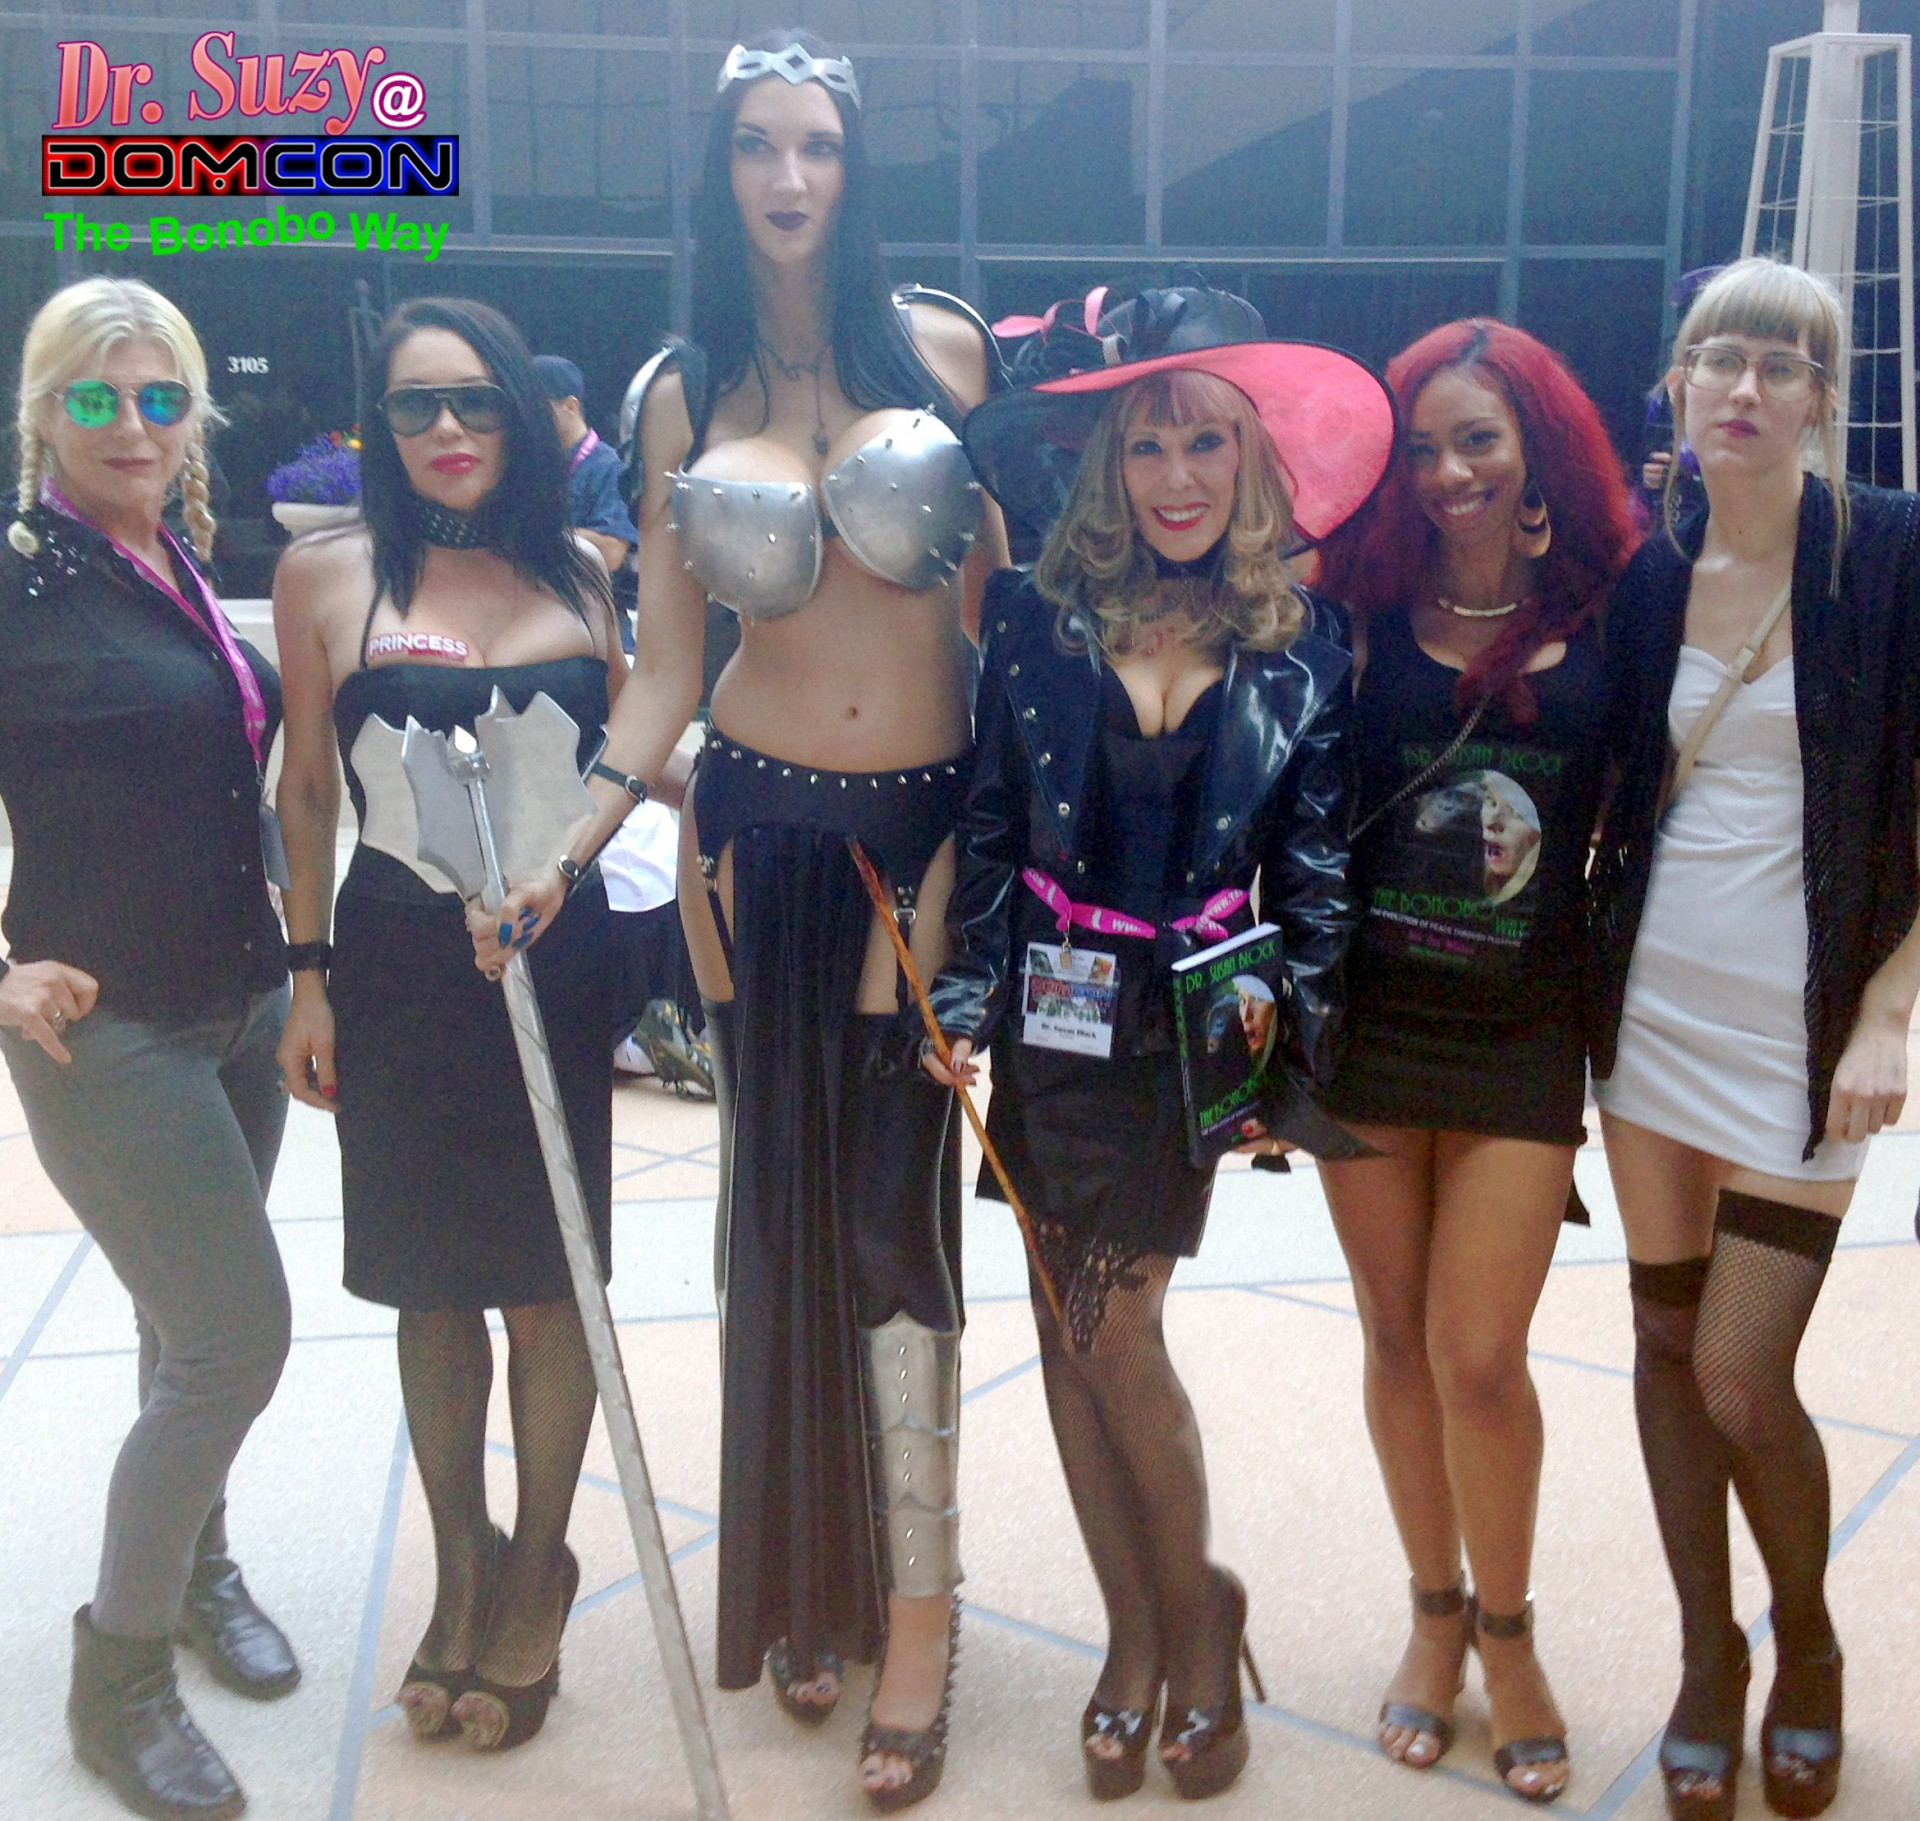 Goddess Fae & the Bonoboville 5, Photo: Unscene Abe